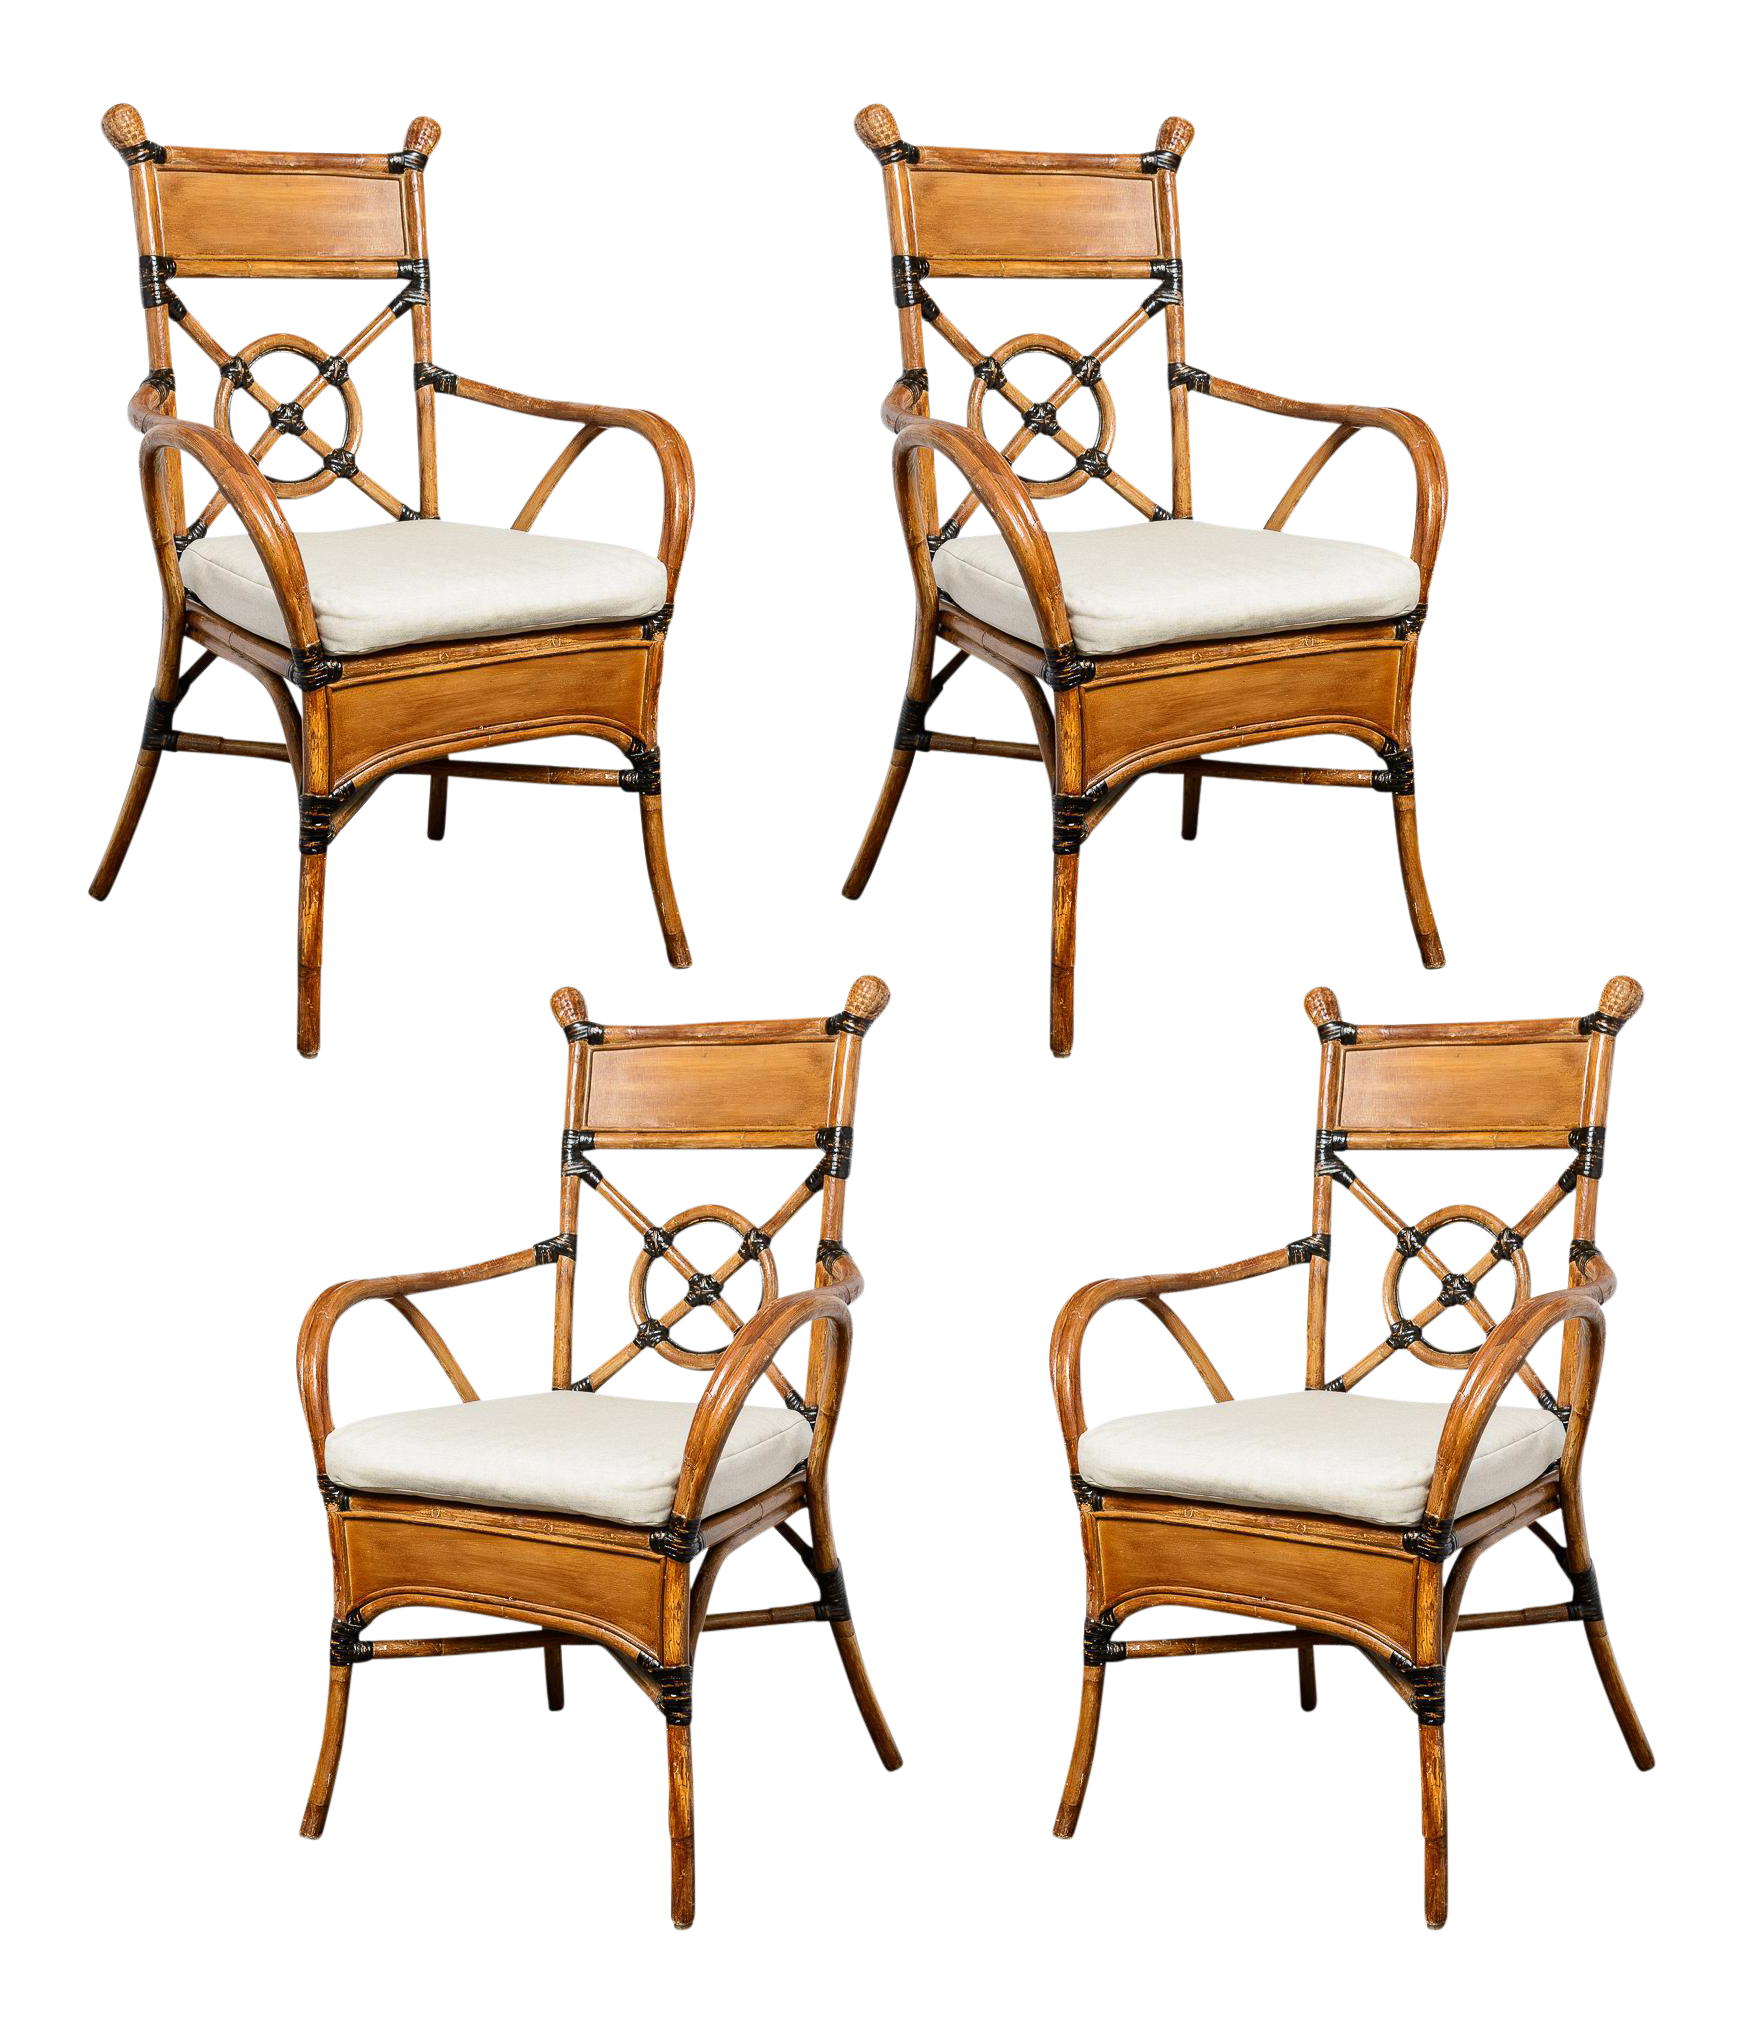 1960 Bamboo & Rattan Chairs Set of 4 on